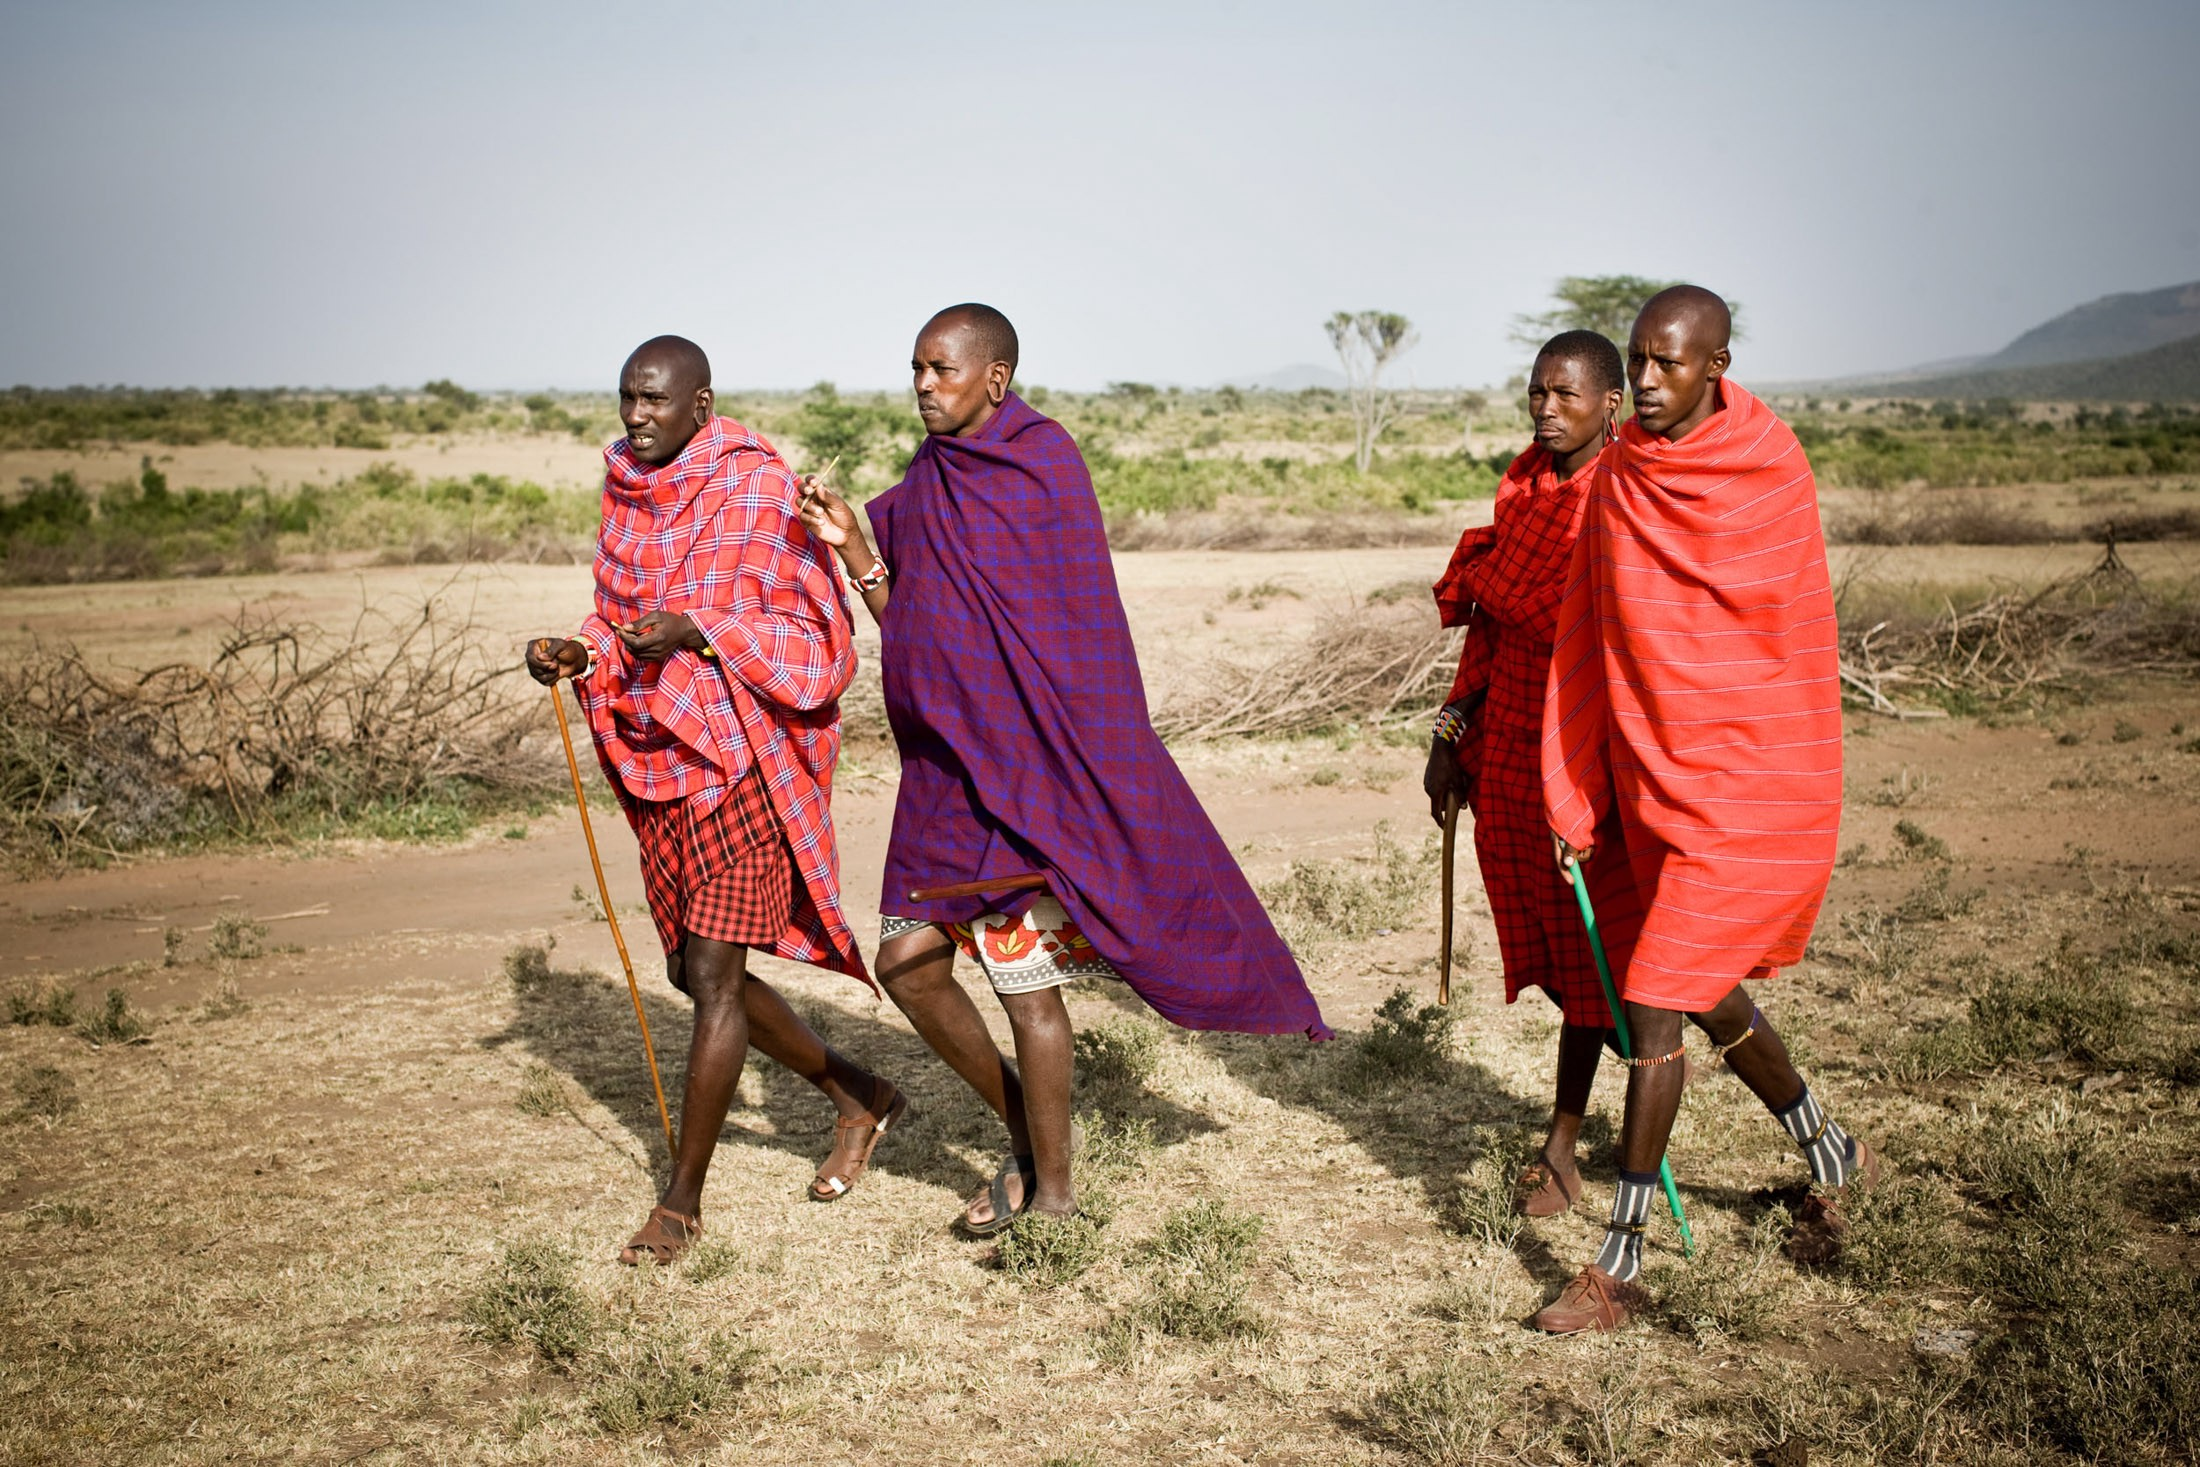 The seminomadic Maasai move their livestock to fresh pastures based on seasonal rotation, but as droughts become more severe in East Africa with climate change, many herders are being forced to seek alternate livelihoods.